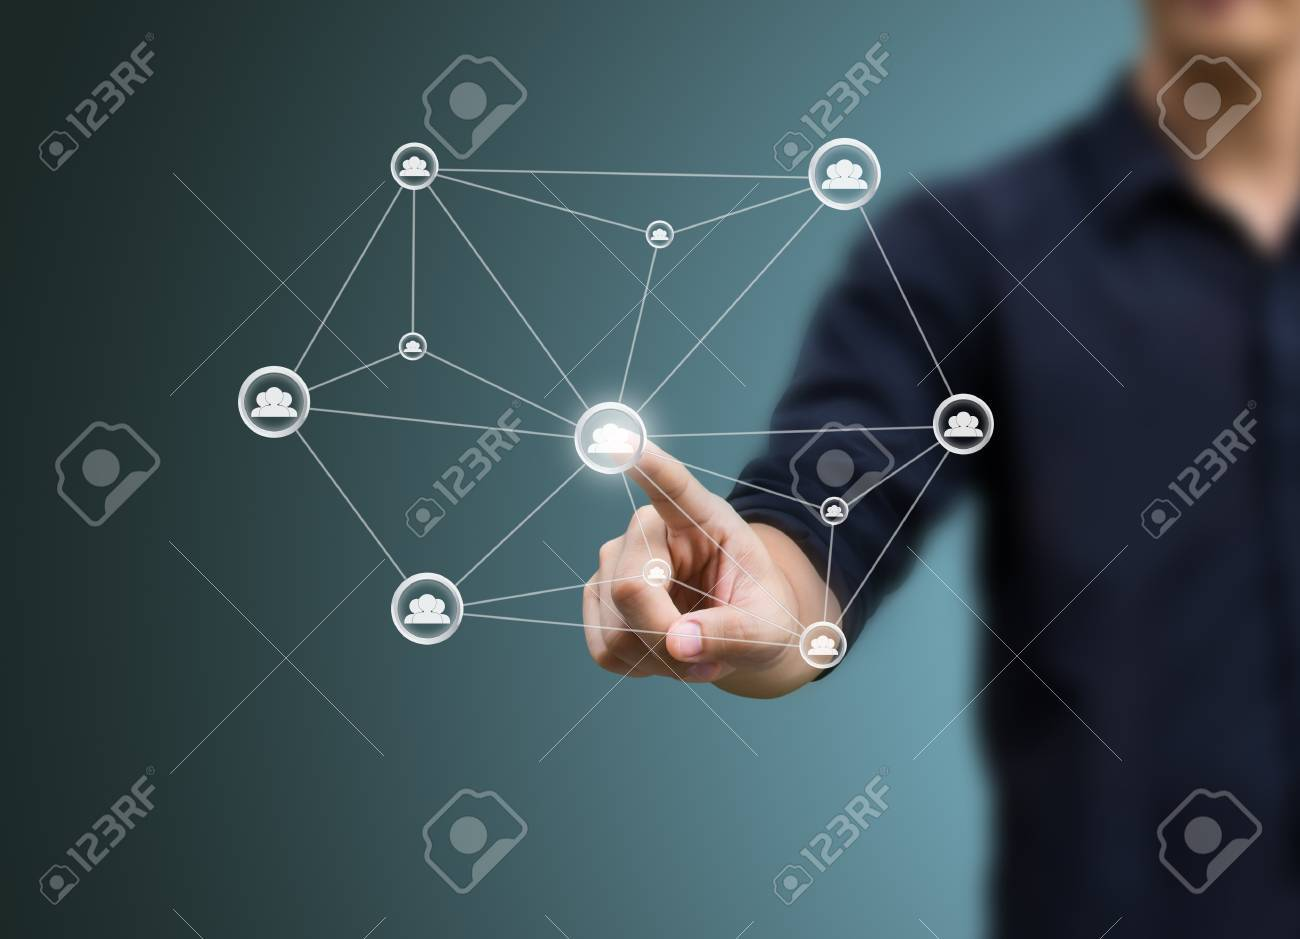 social network structure Stock Photo - 15380899